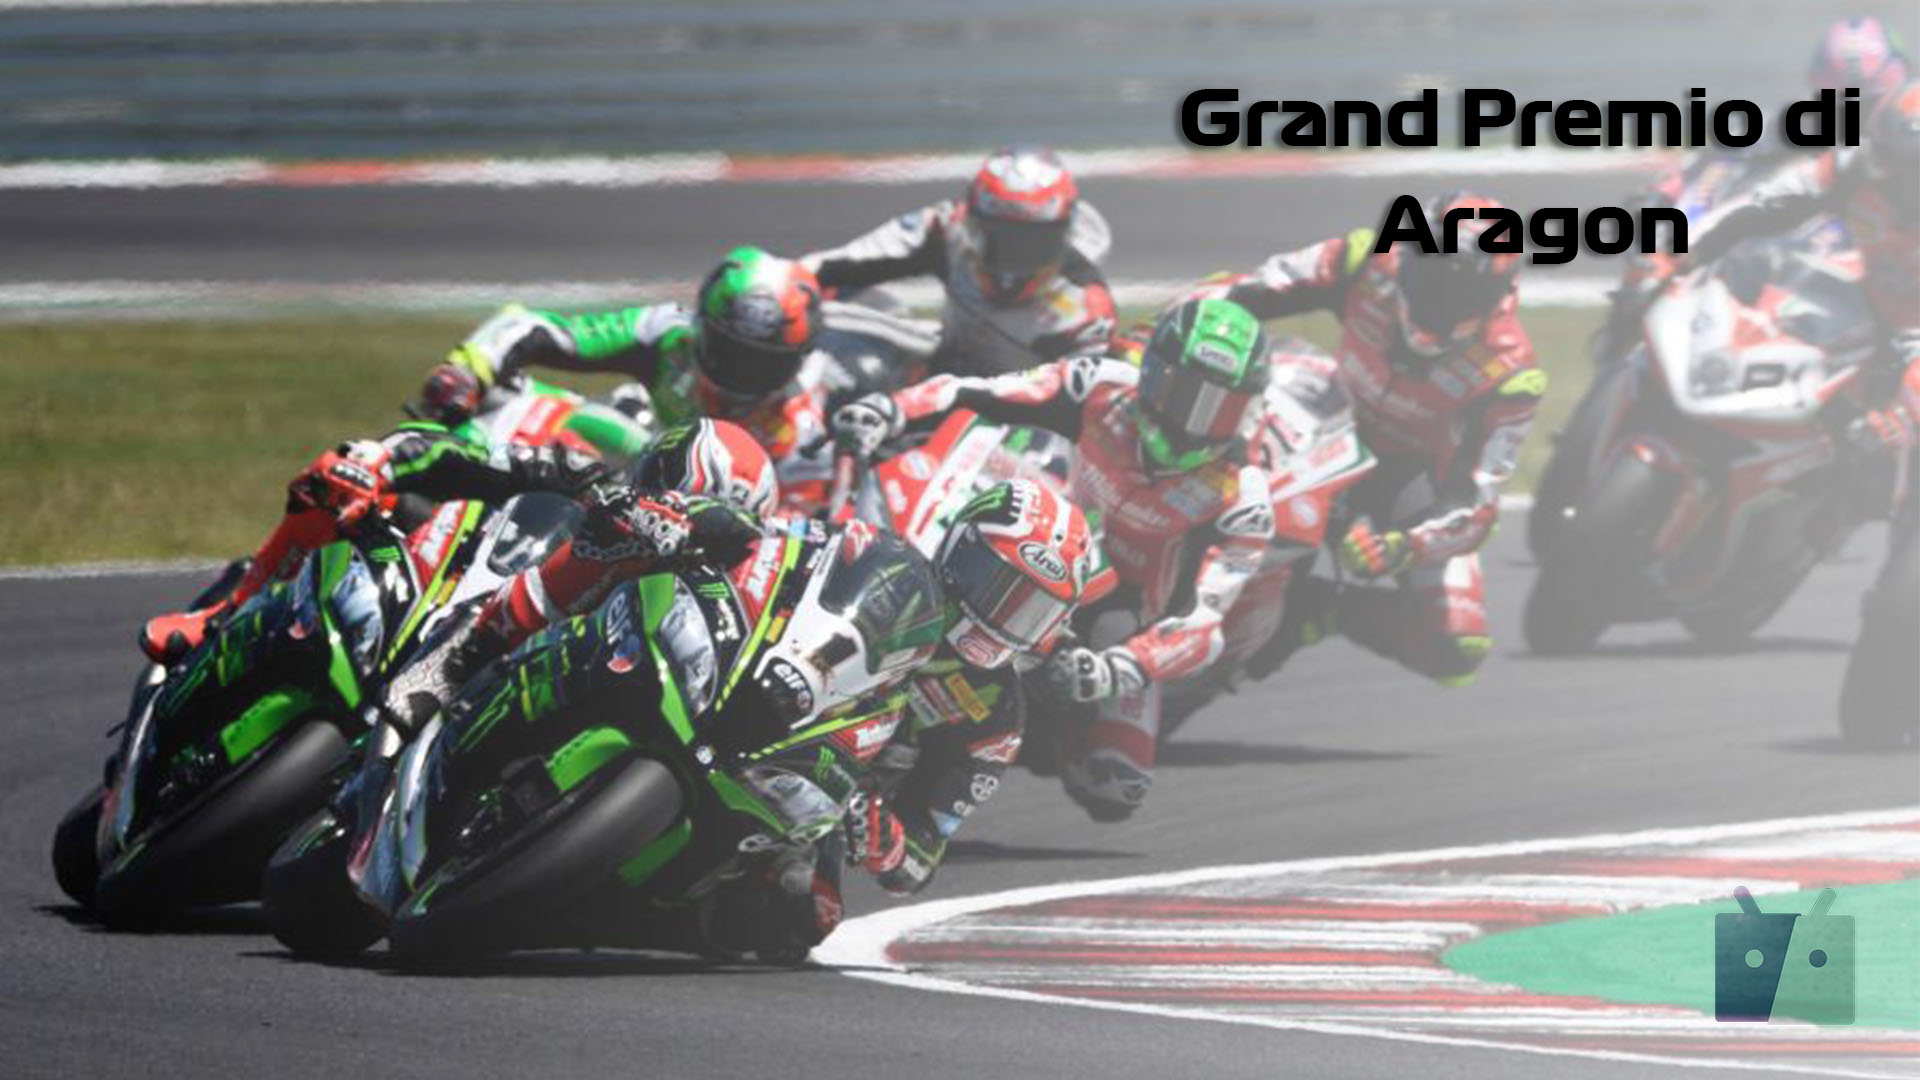 SBK, GP Aragon 2020 sul circuito di MotorLand Aragon: dove vedere la gara in TV e streaming